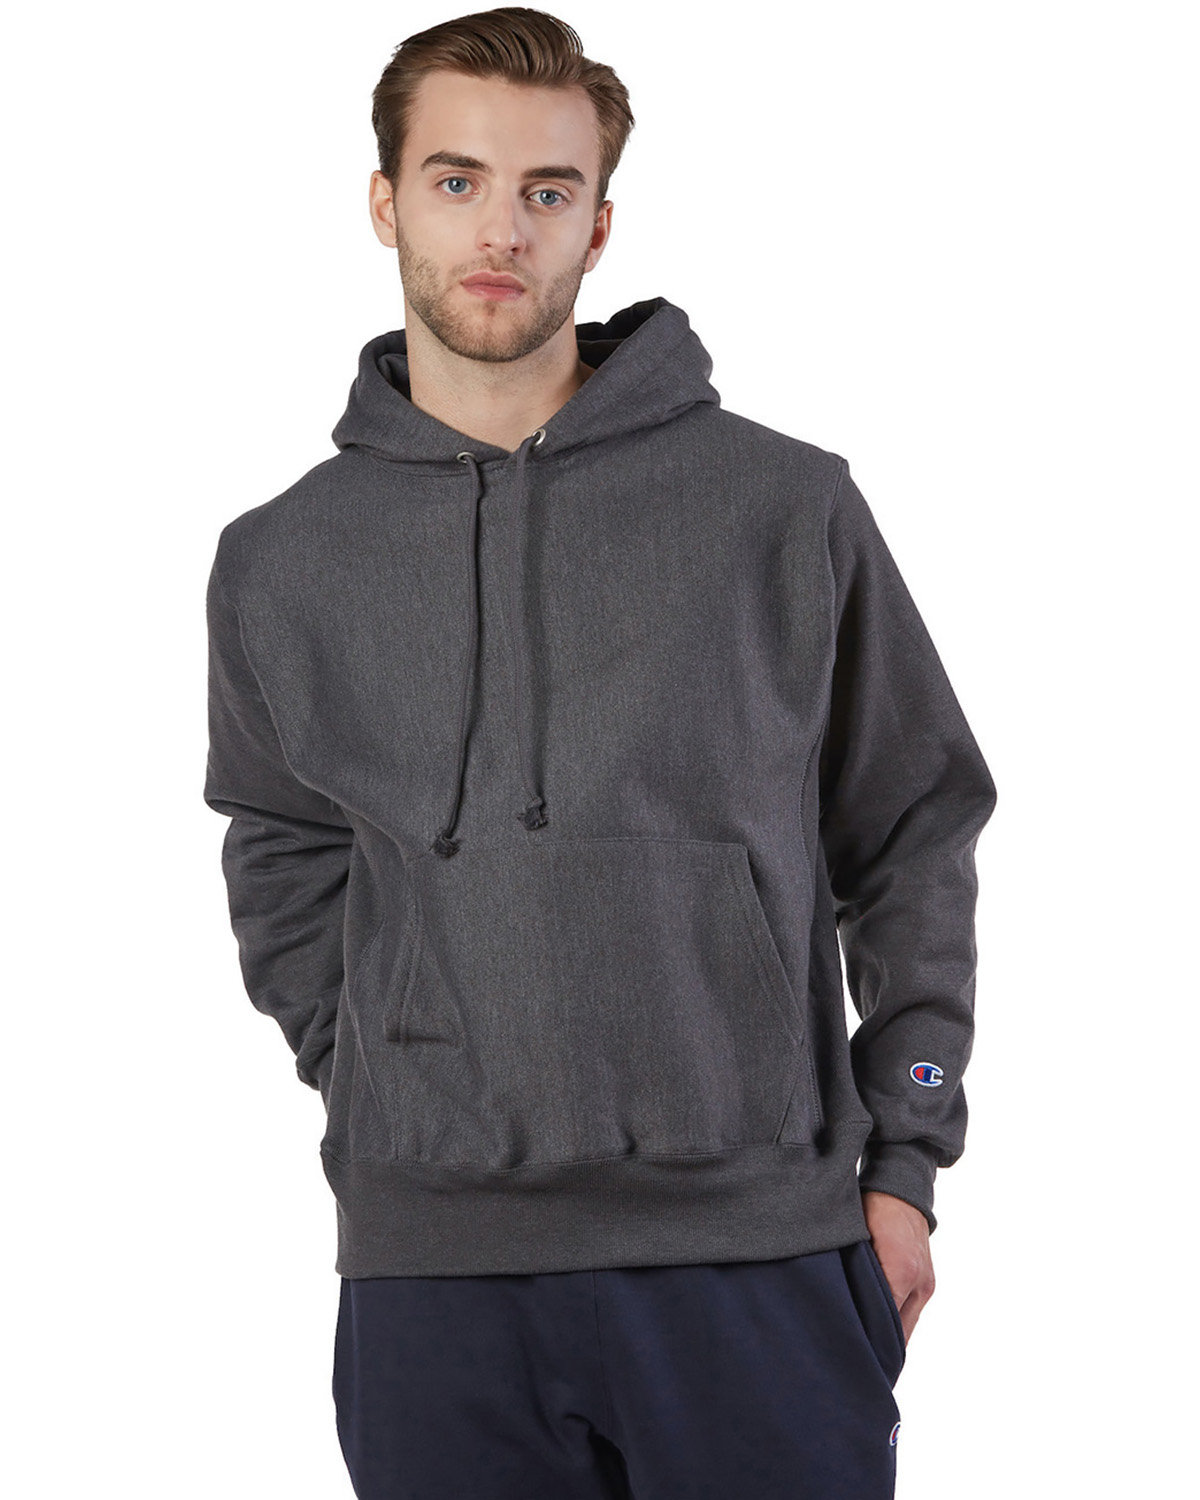 Champion Reverse Weave® Pullover Hooded Sweatshirt CHARCOAL HEATHER